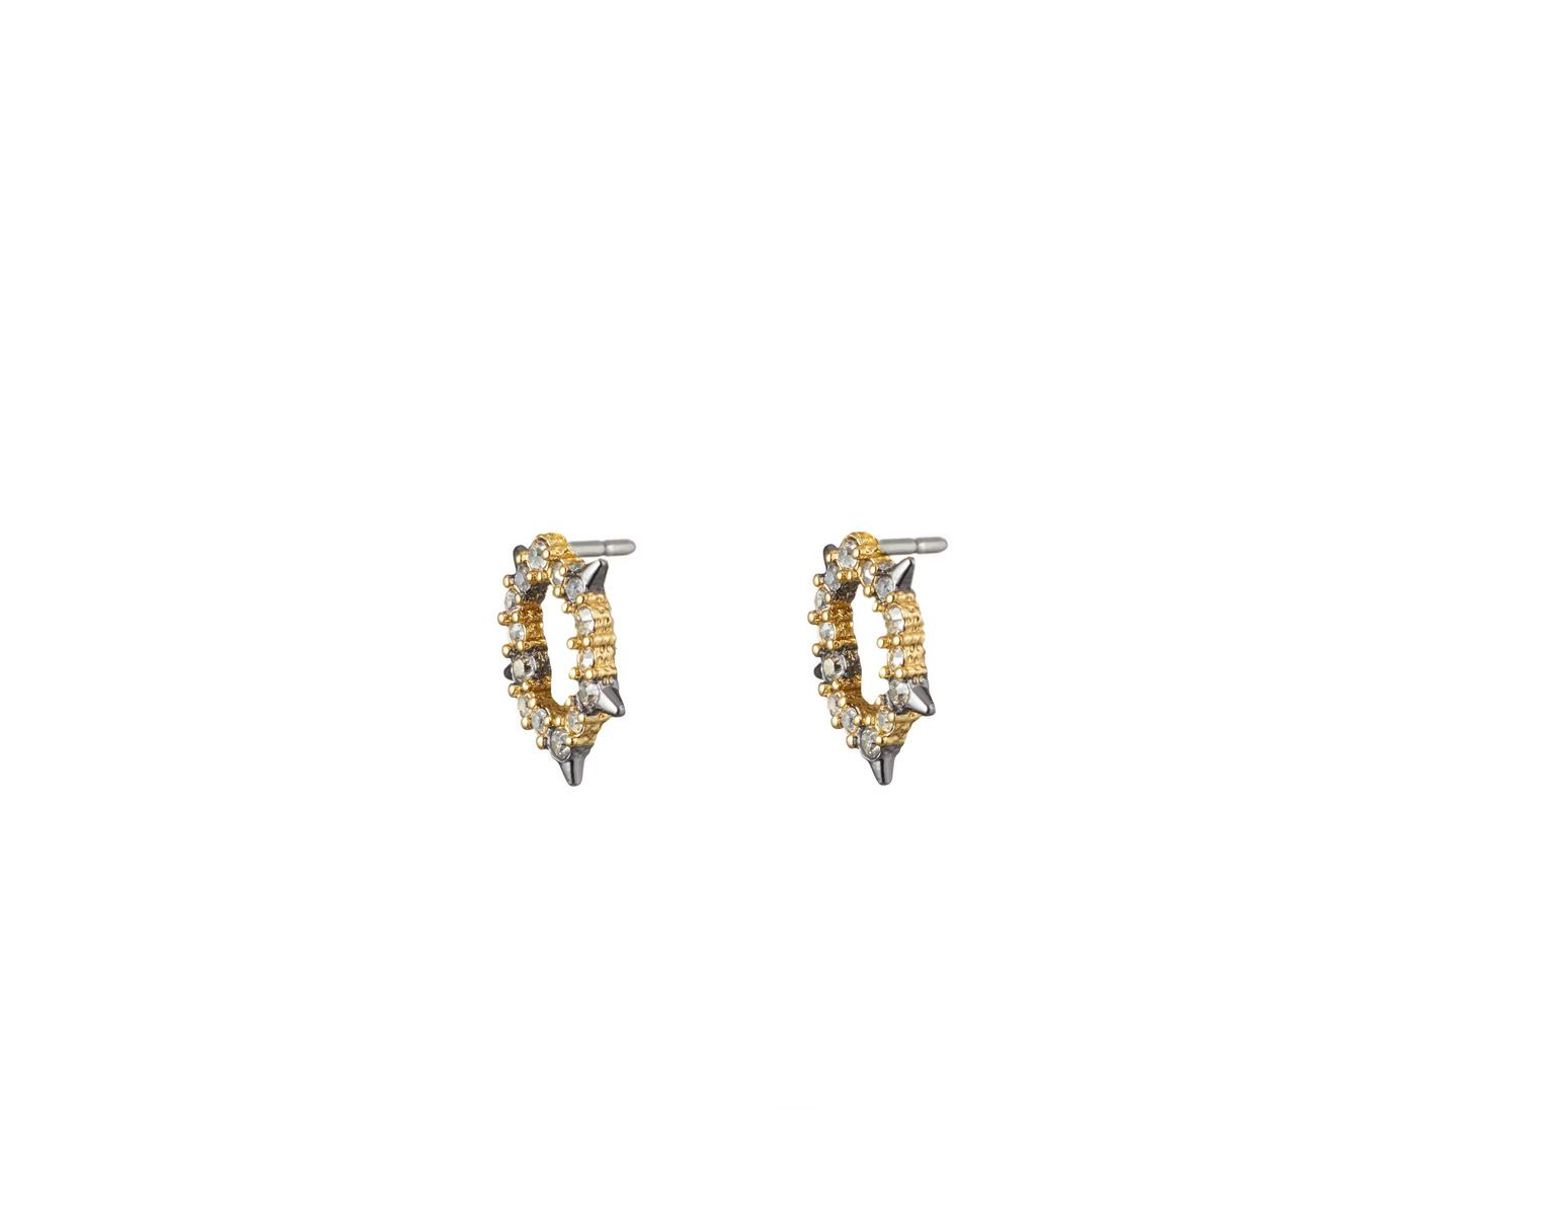 58c302b40 Alexis Bittar Crystal Encrusted Spiked Stud Earring You Might Also Like -  Save 80% - Lyst